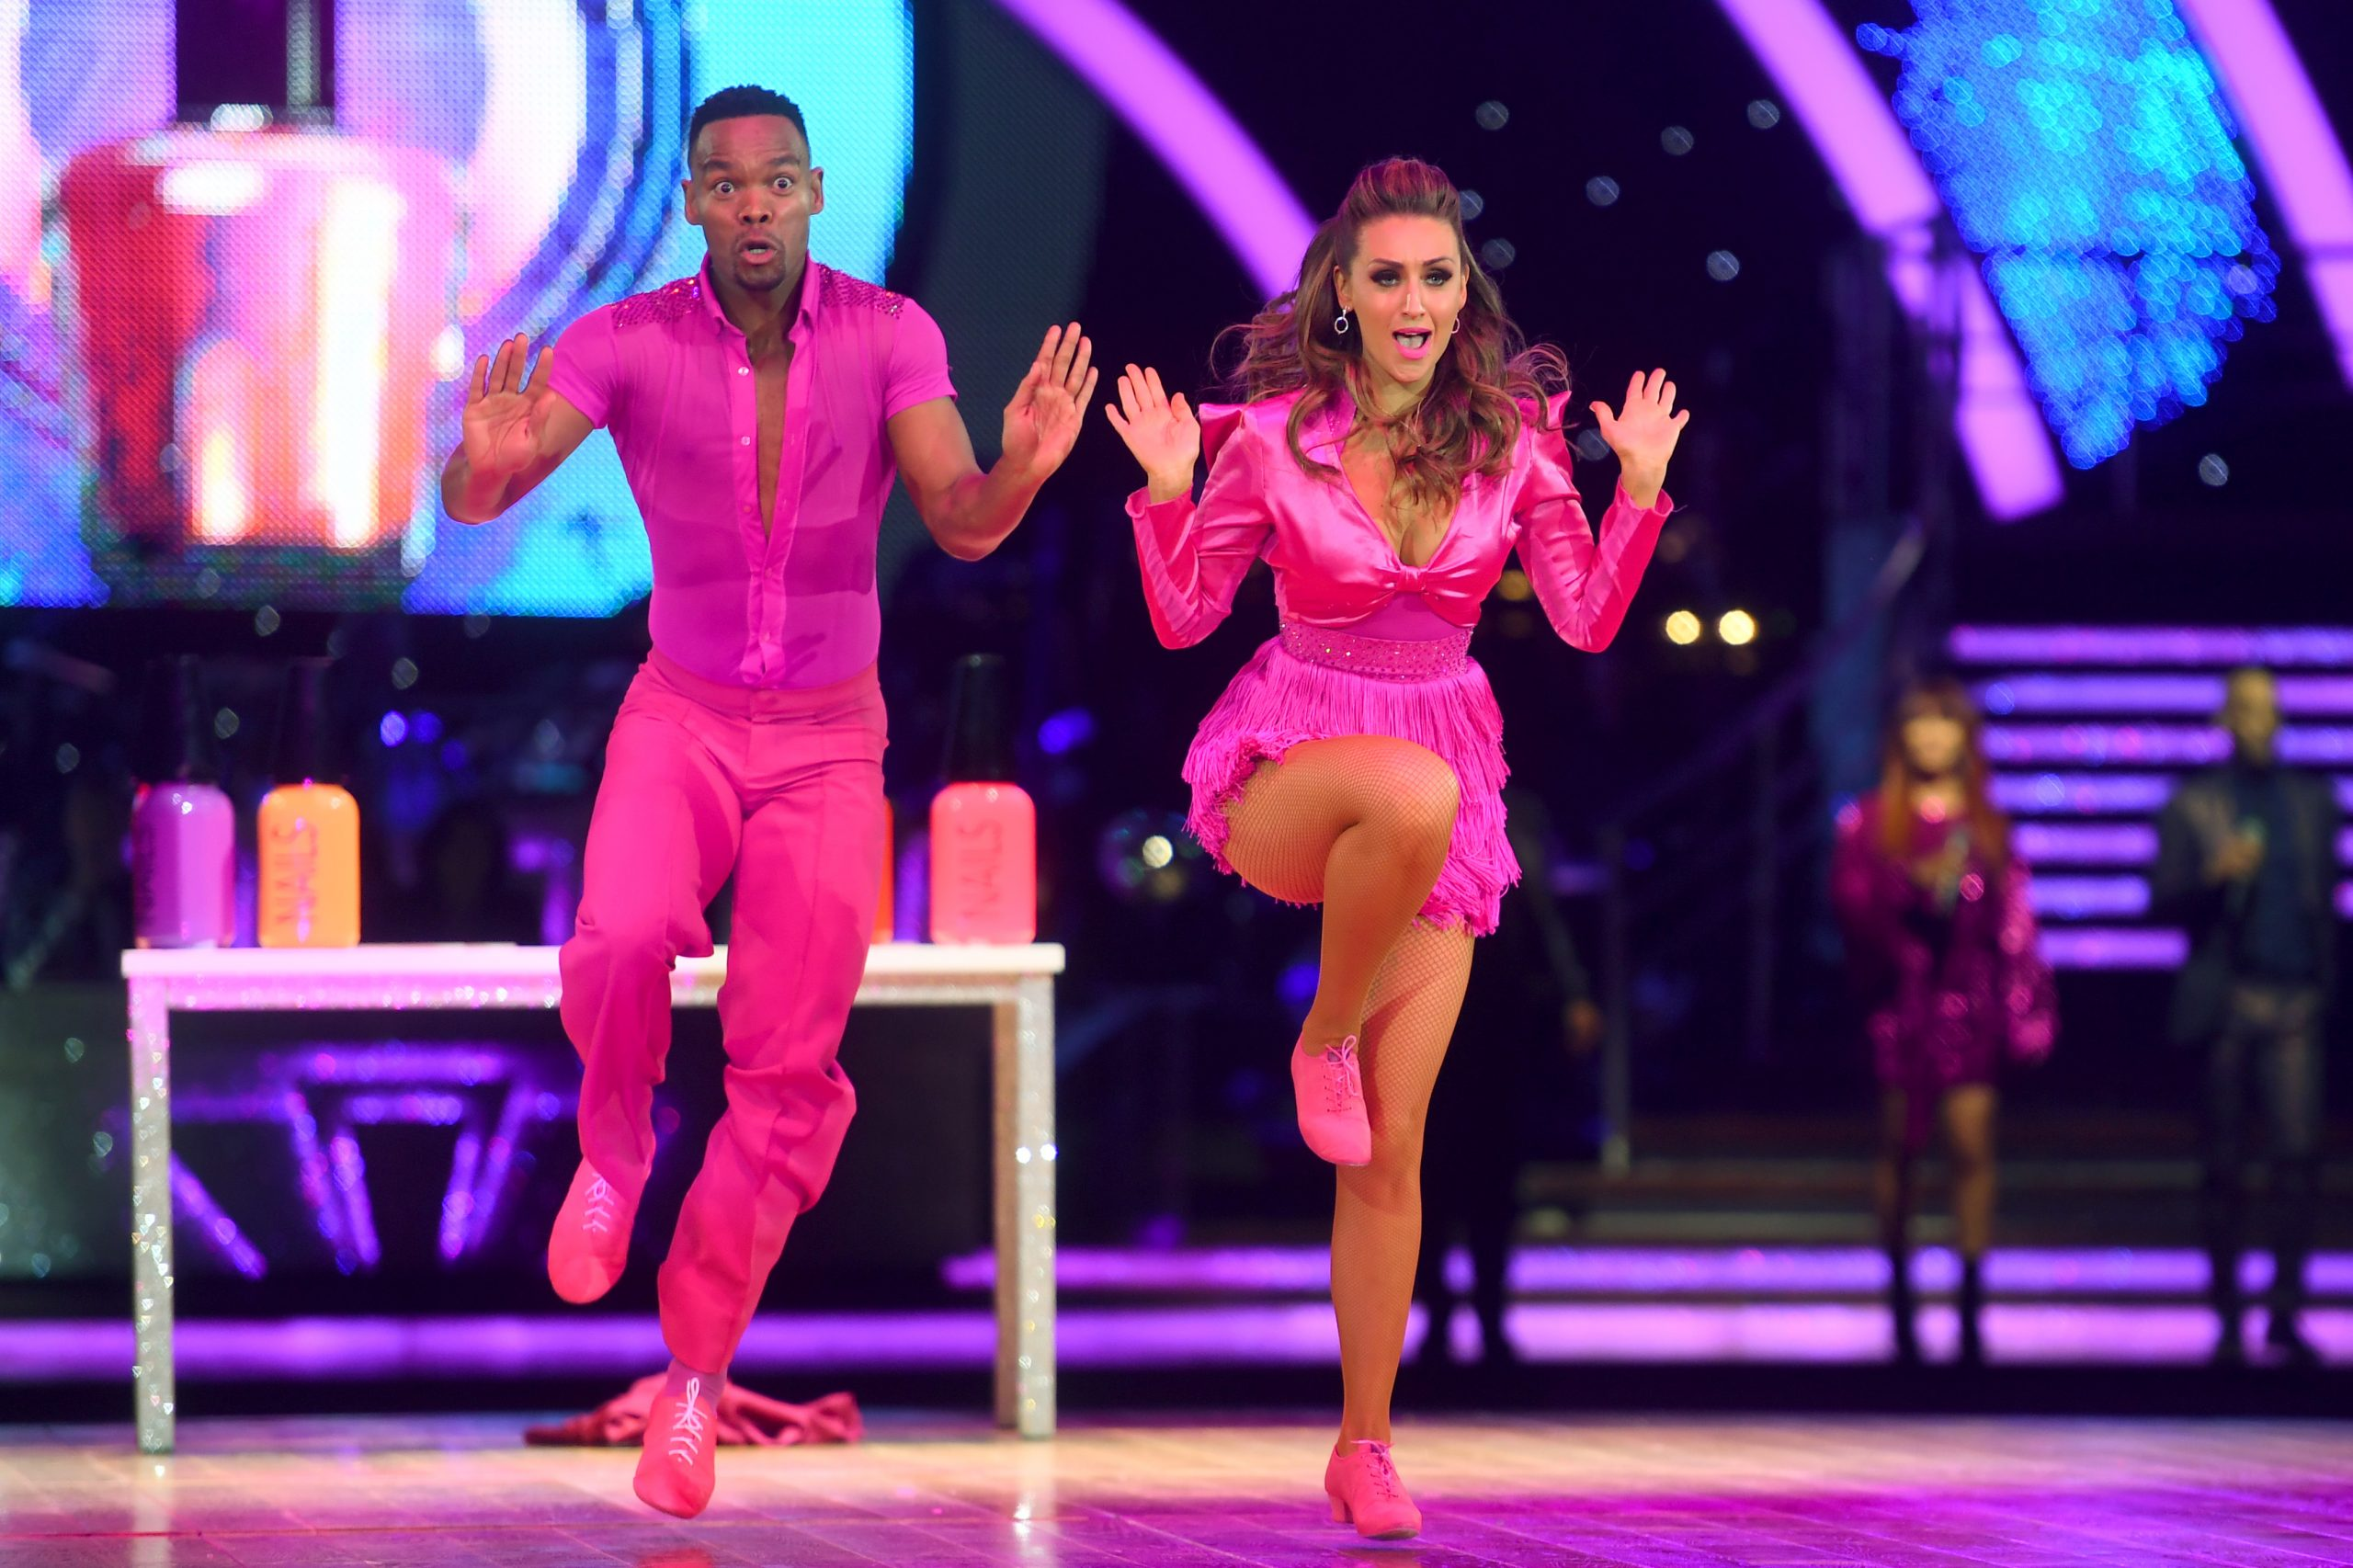 'I'm absolutely heartbroken' Catherine Tyldesley reveals very sad news during Strictly Come Dancing Tour